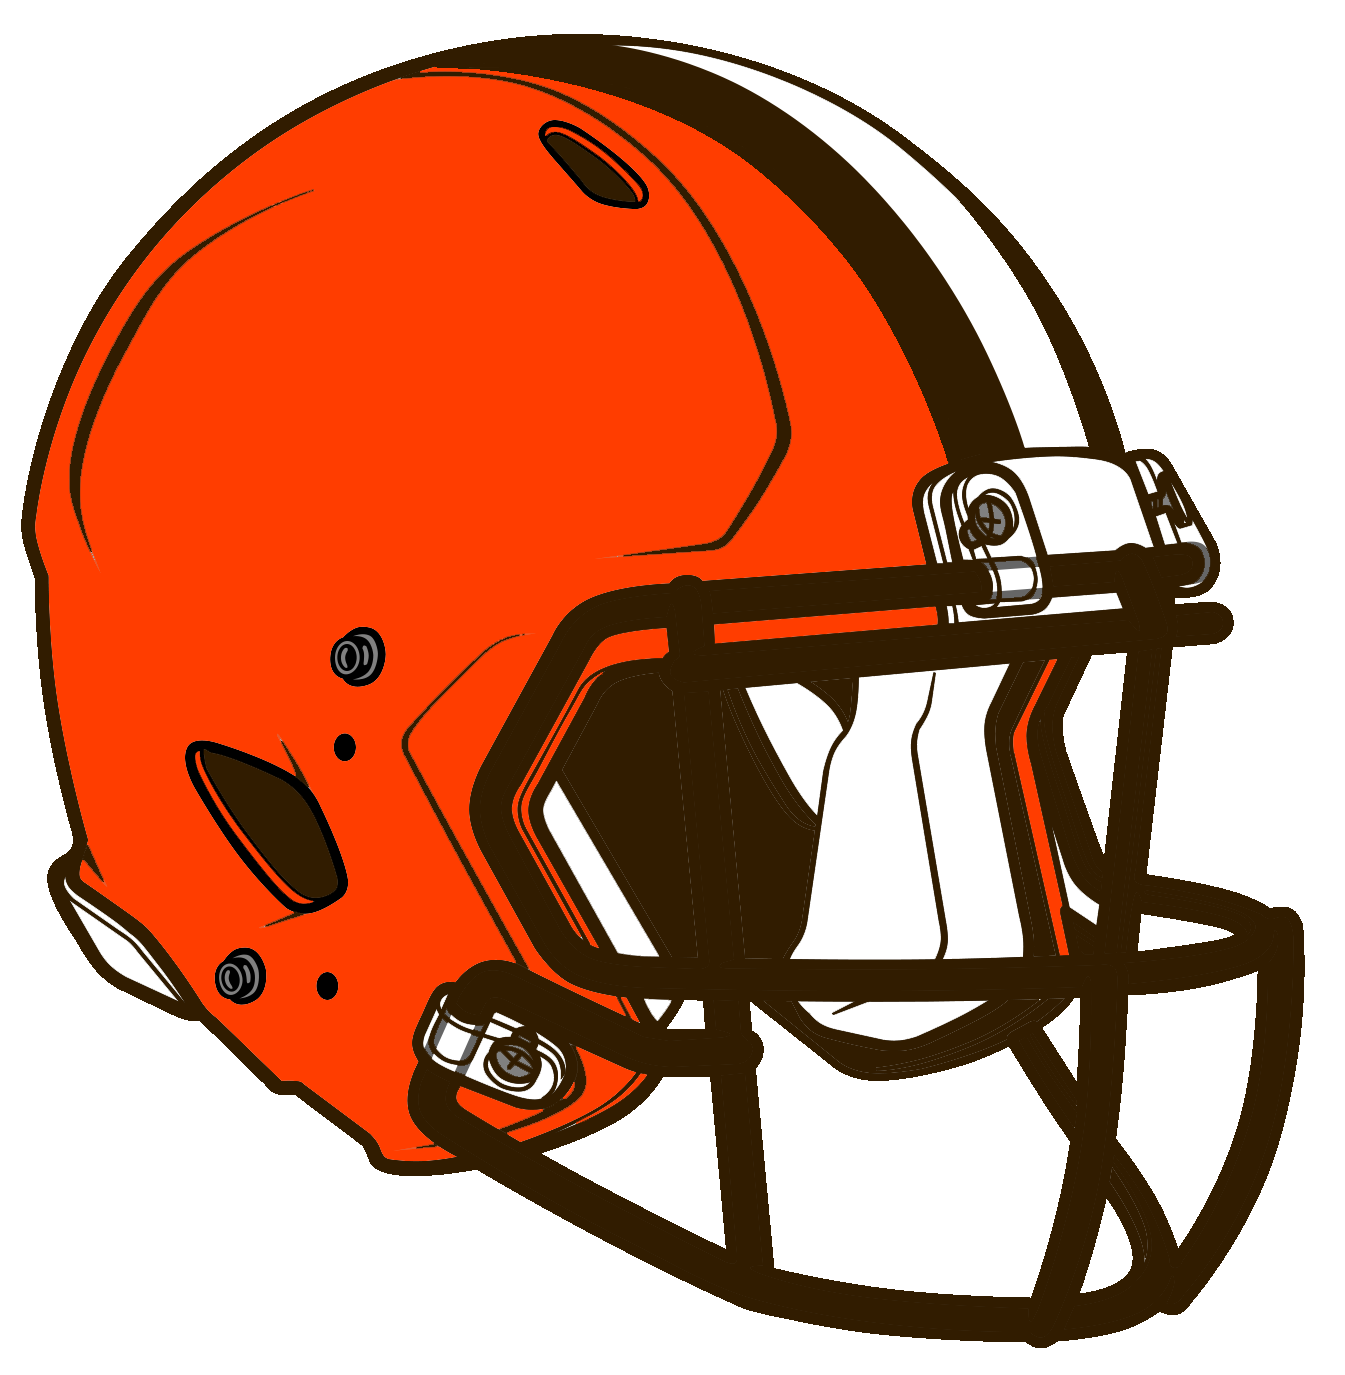 New Browns uni coming 2015 - Page 101 - Sports Logos ...